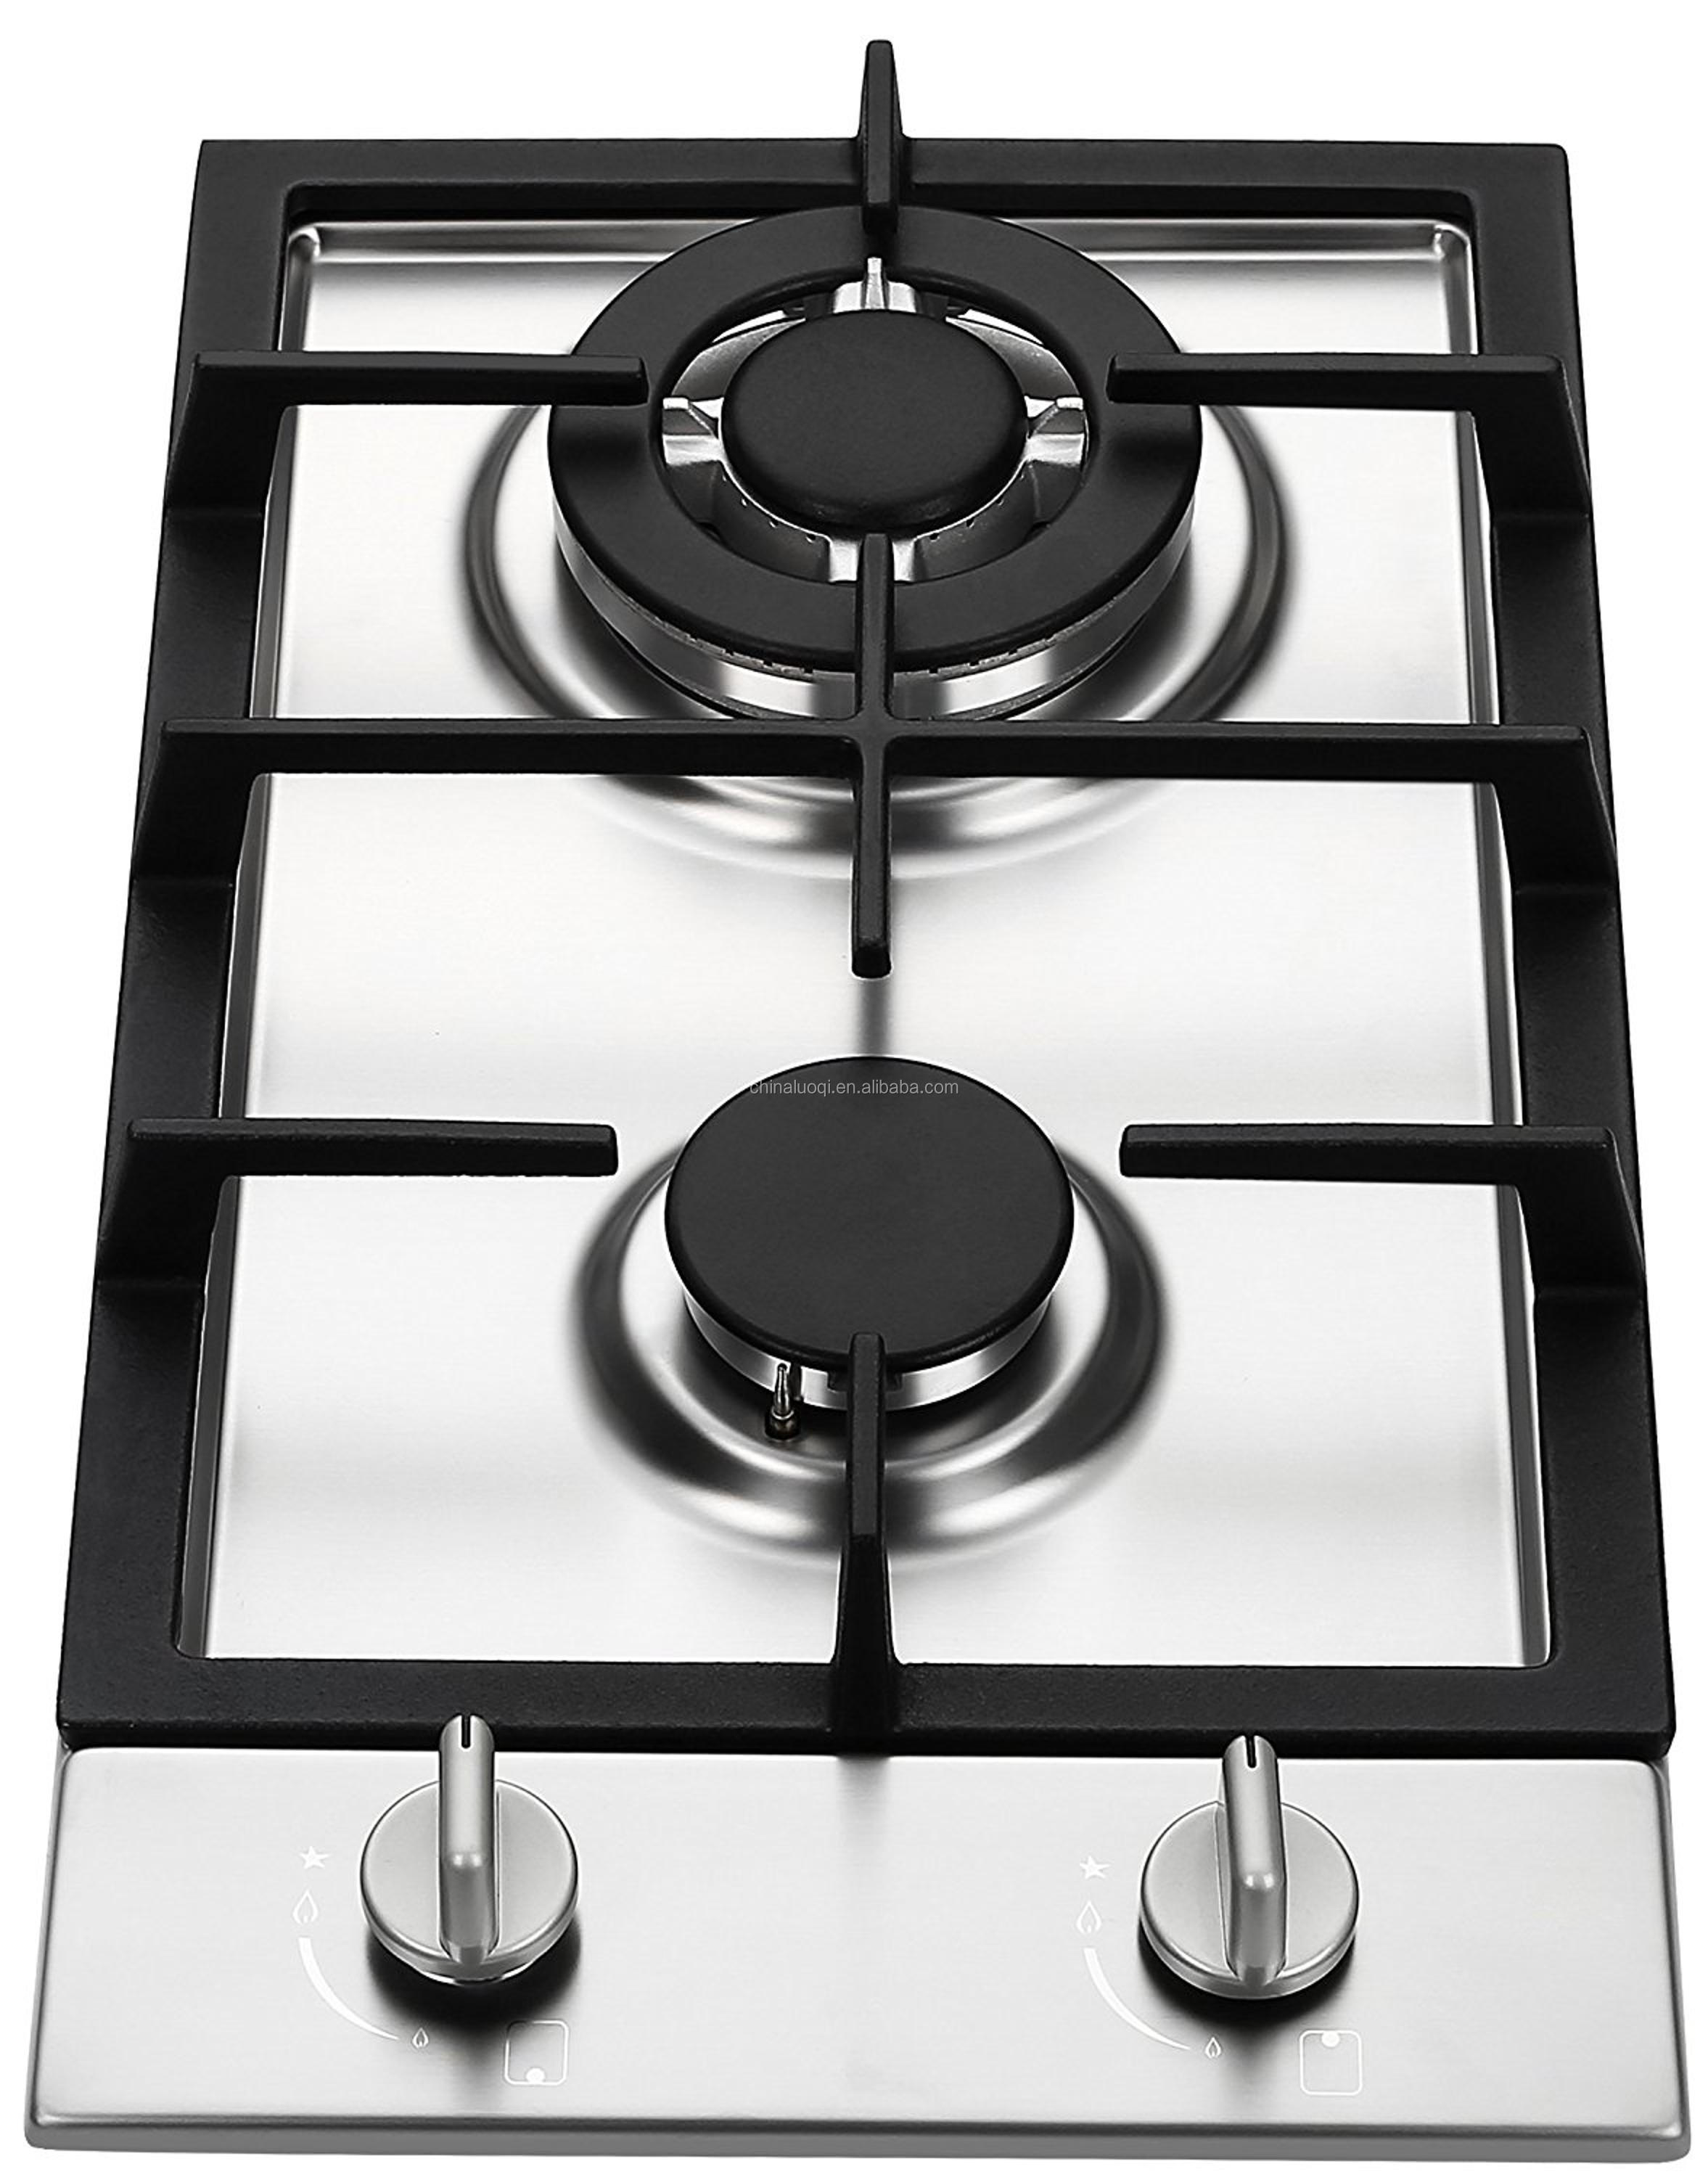 China manufacture Built-in stainless steel 2 burner gas stove gas hob butane kitchen cooktops